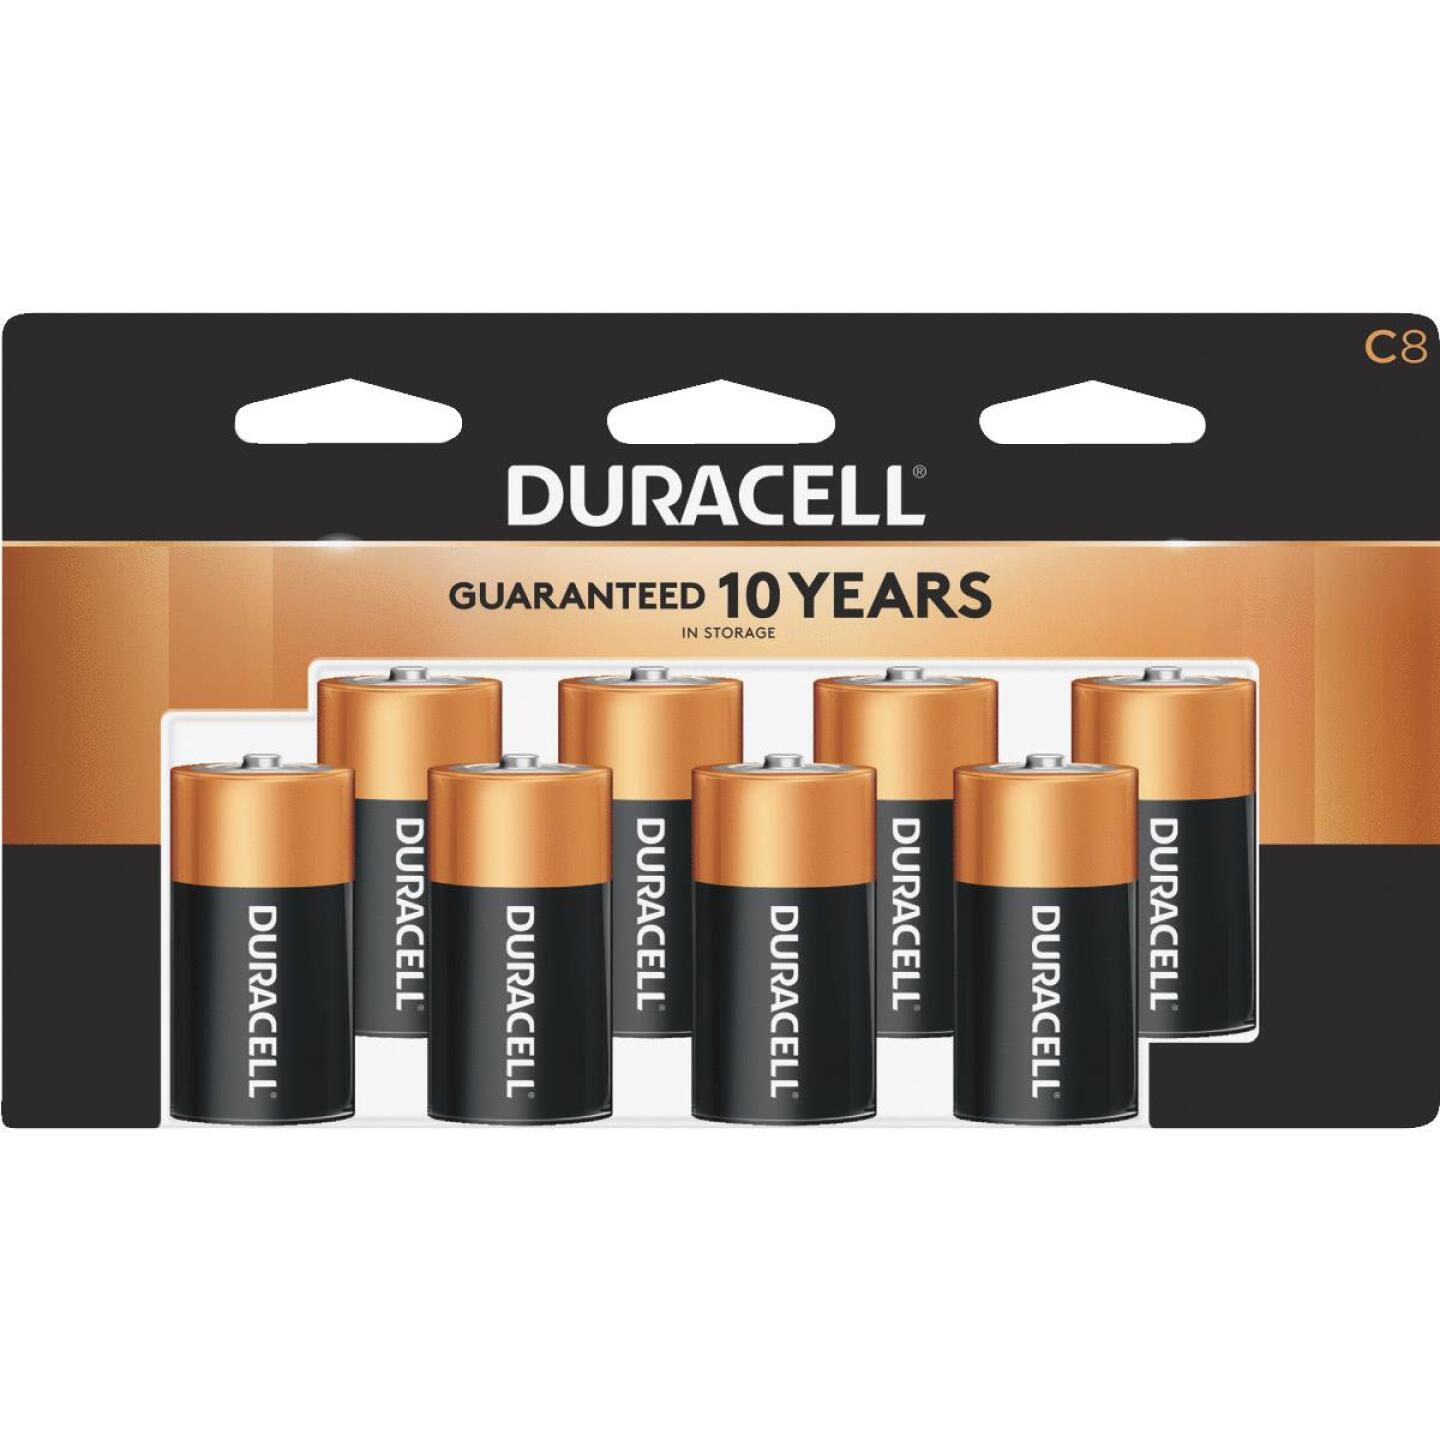 Duracell CopperTop C Alkaline Battery (8-Pack) Image 1